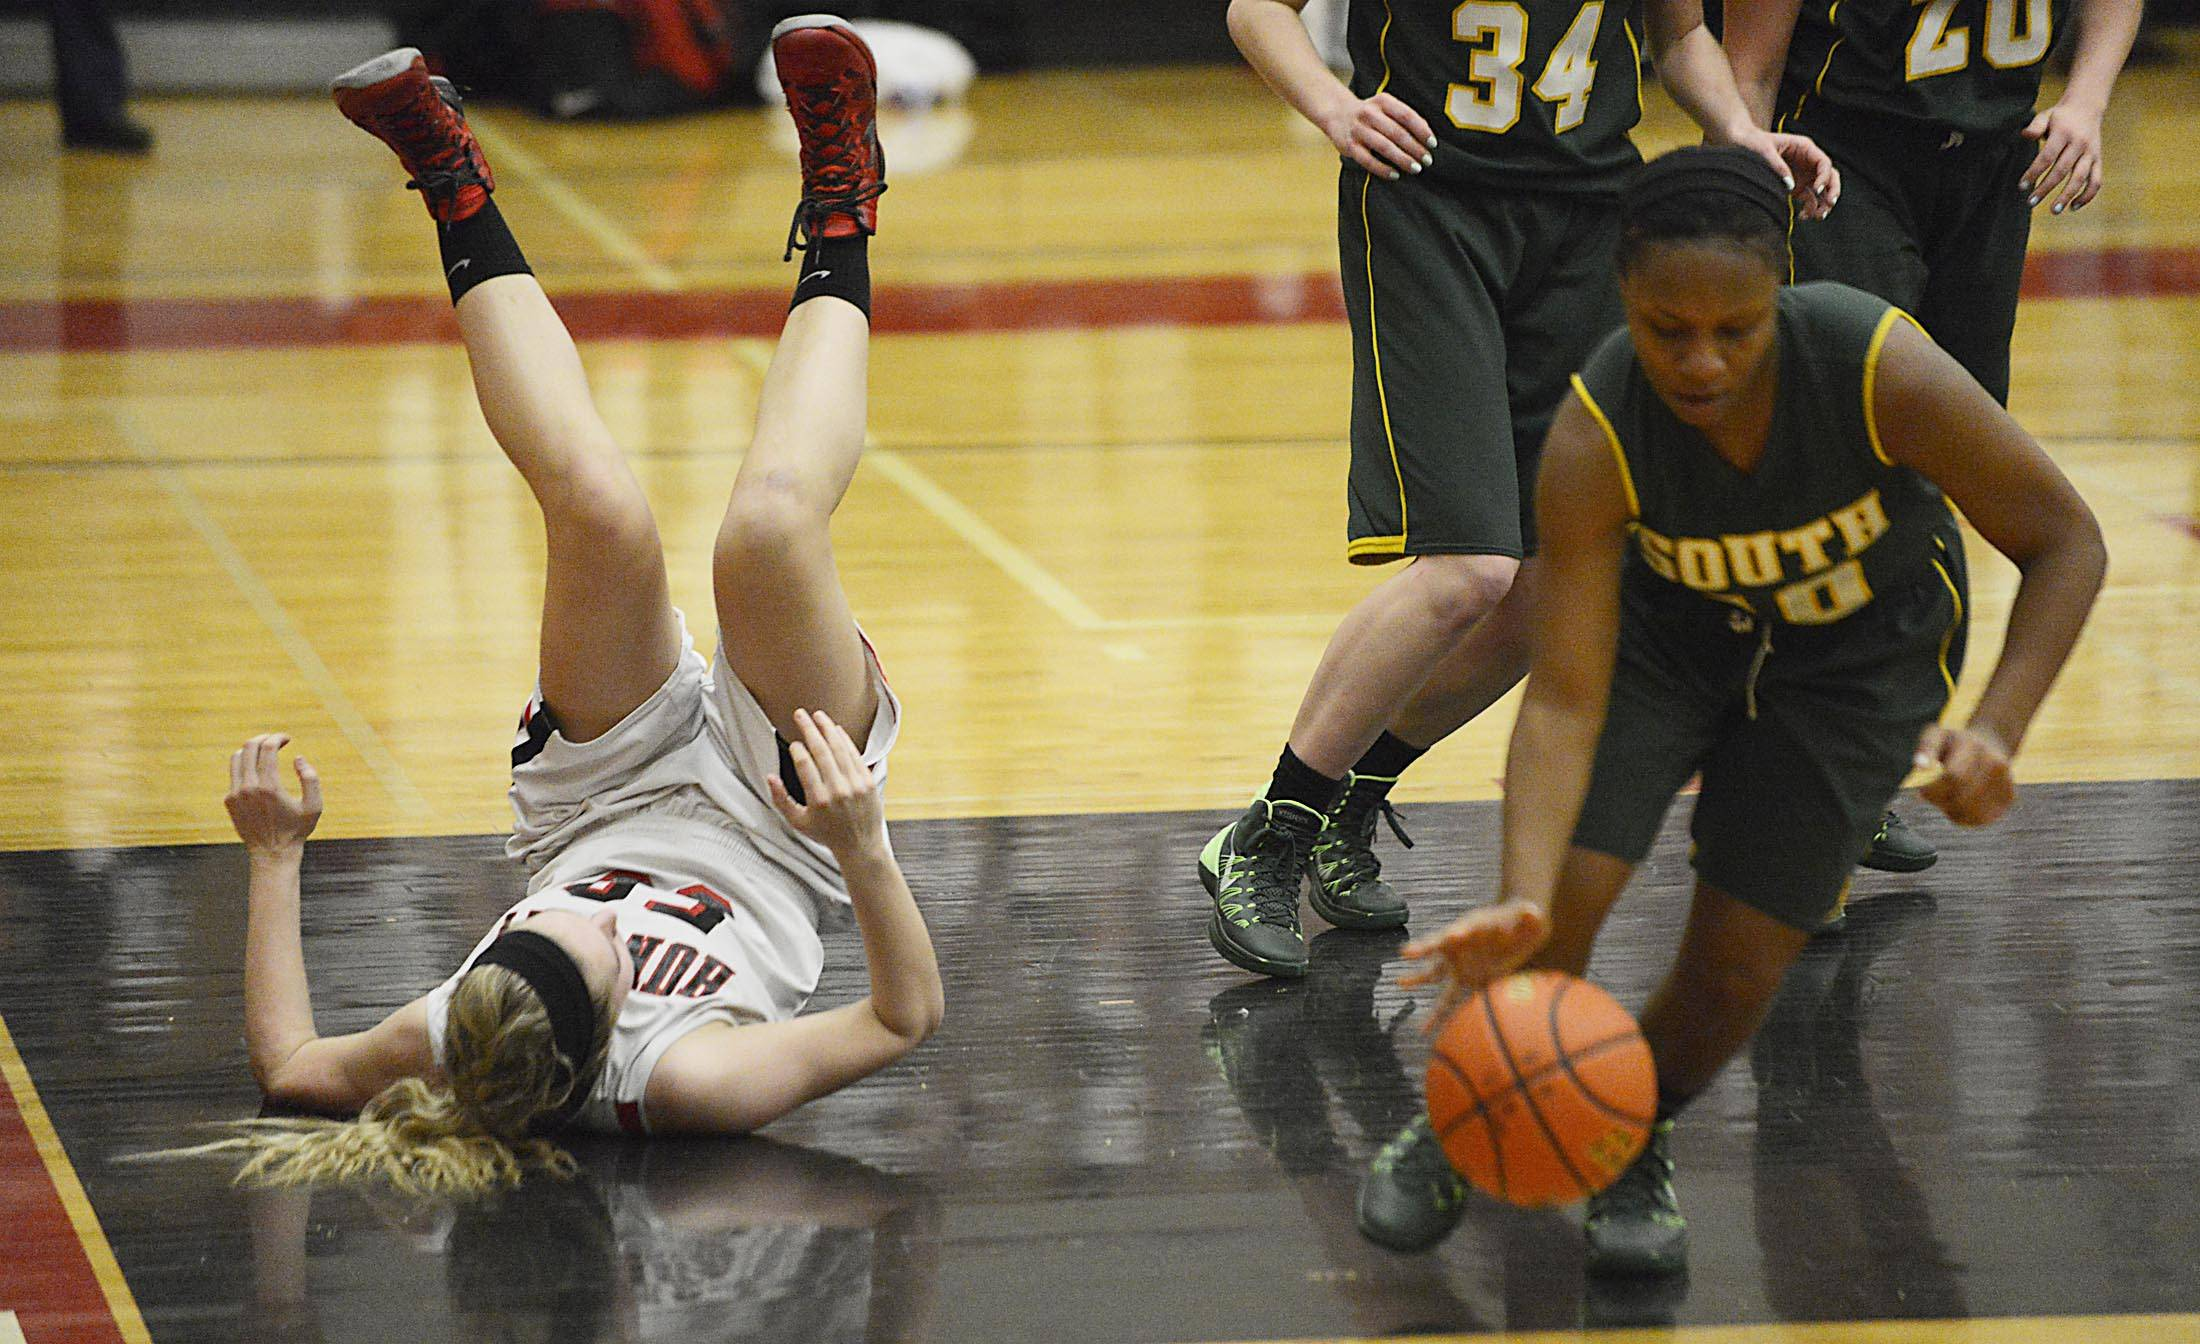 Images from the Crystal Lake South vs. Huntley girls basketball game Tuesday, February 11, 2014.